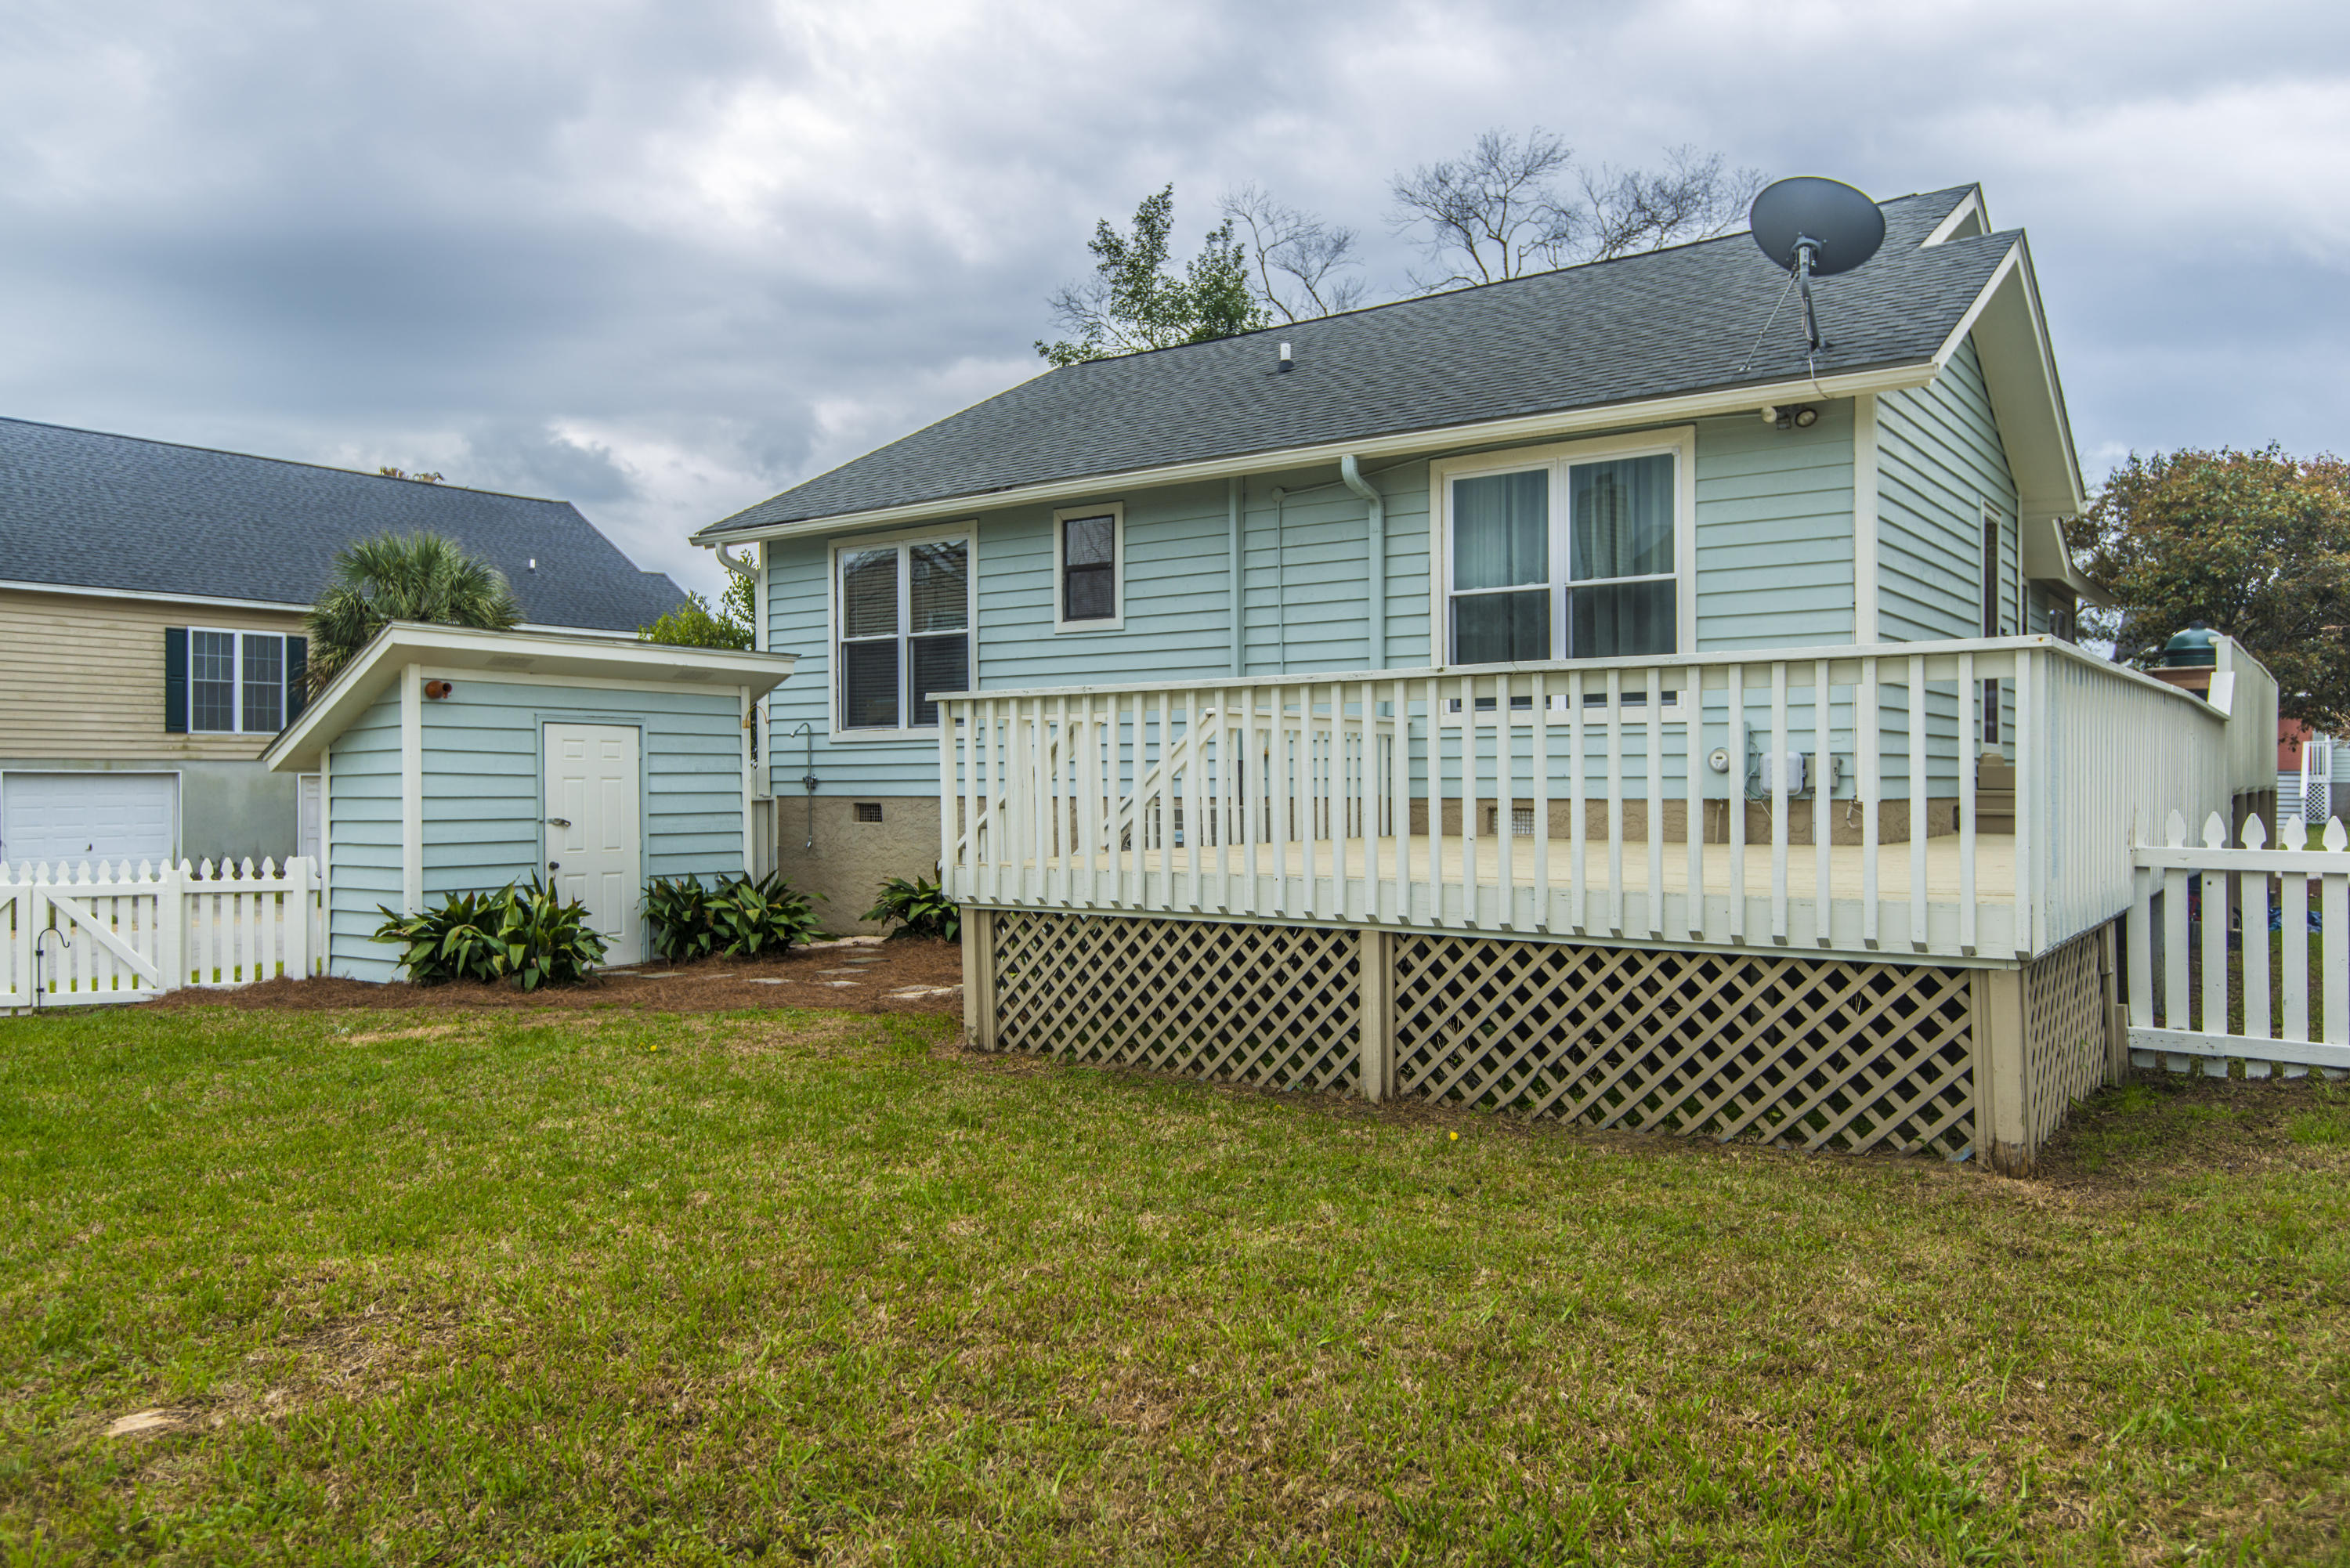 Pirates Cove Homes For Sale - 1530 Privateer, Mount Pleasant, SC - 42